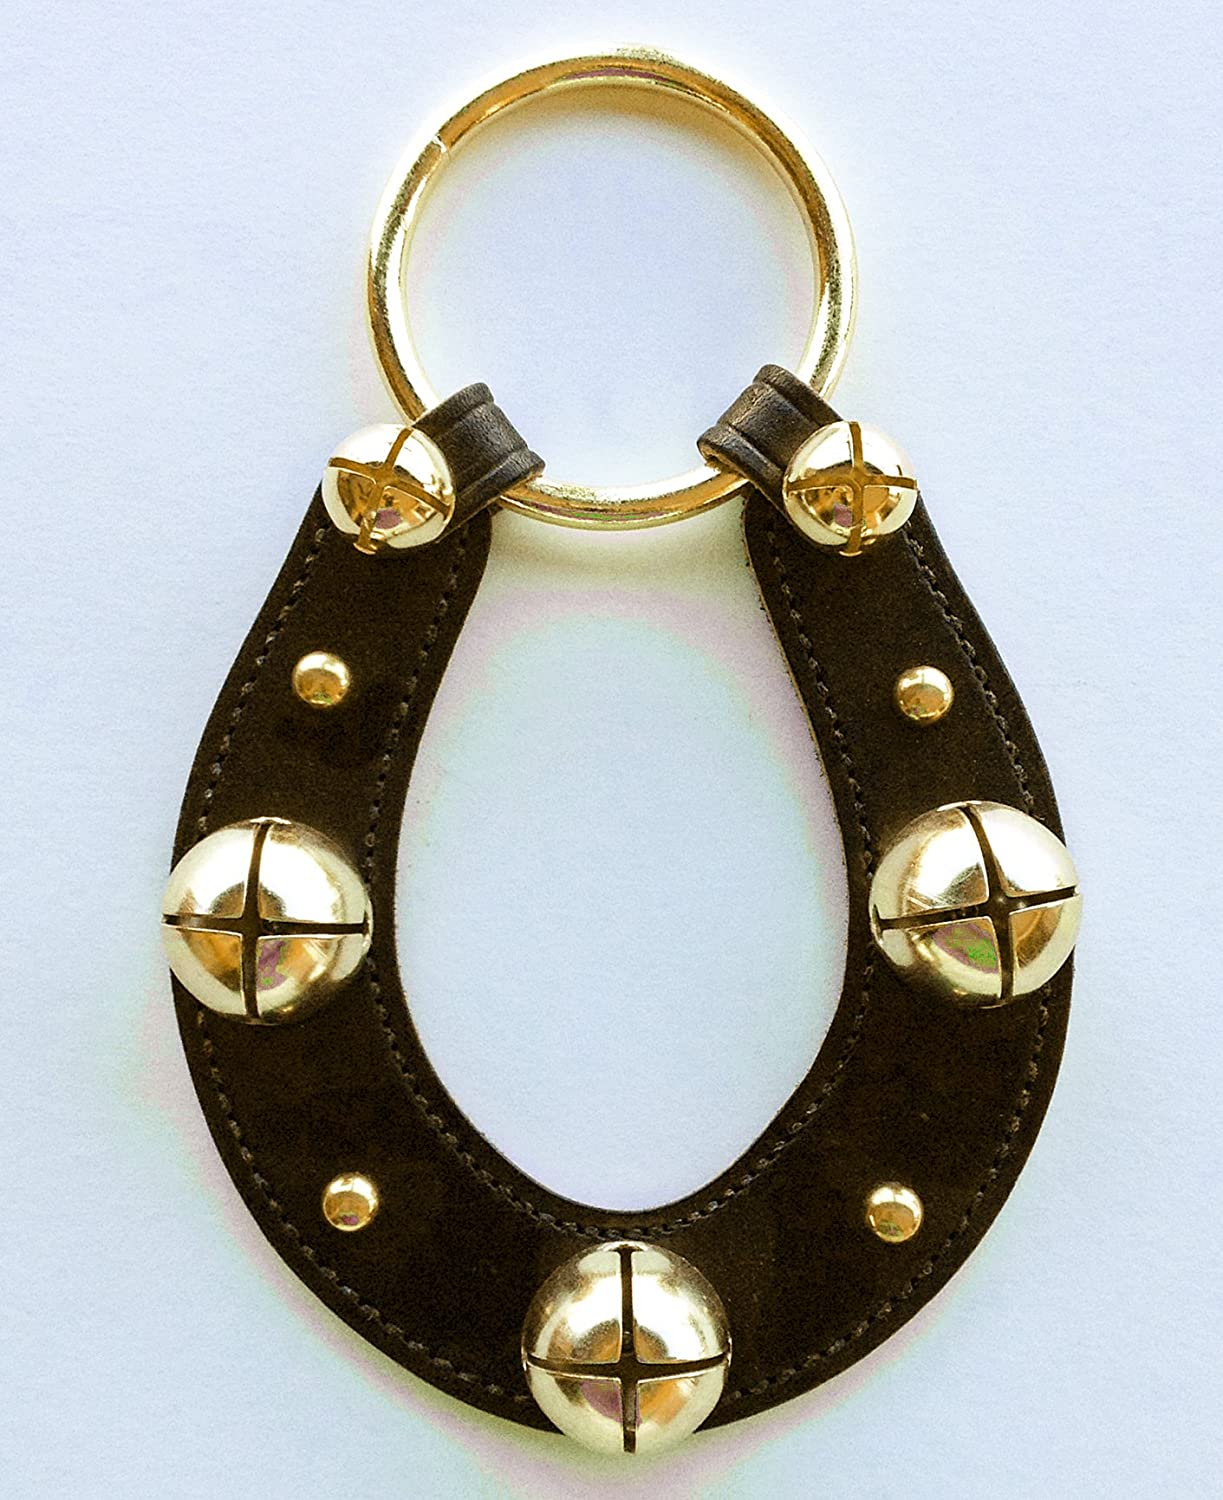 Leather Horseshoe Bell Strap w//Brass Plated Bells Black Leather Sleigh Bells Equestrian Decor KensingtonRow Home Collection Bells /& Sleigh Bells